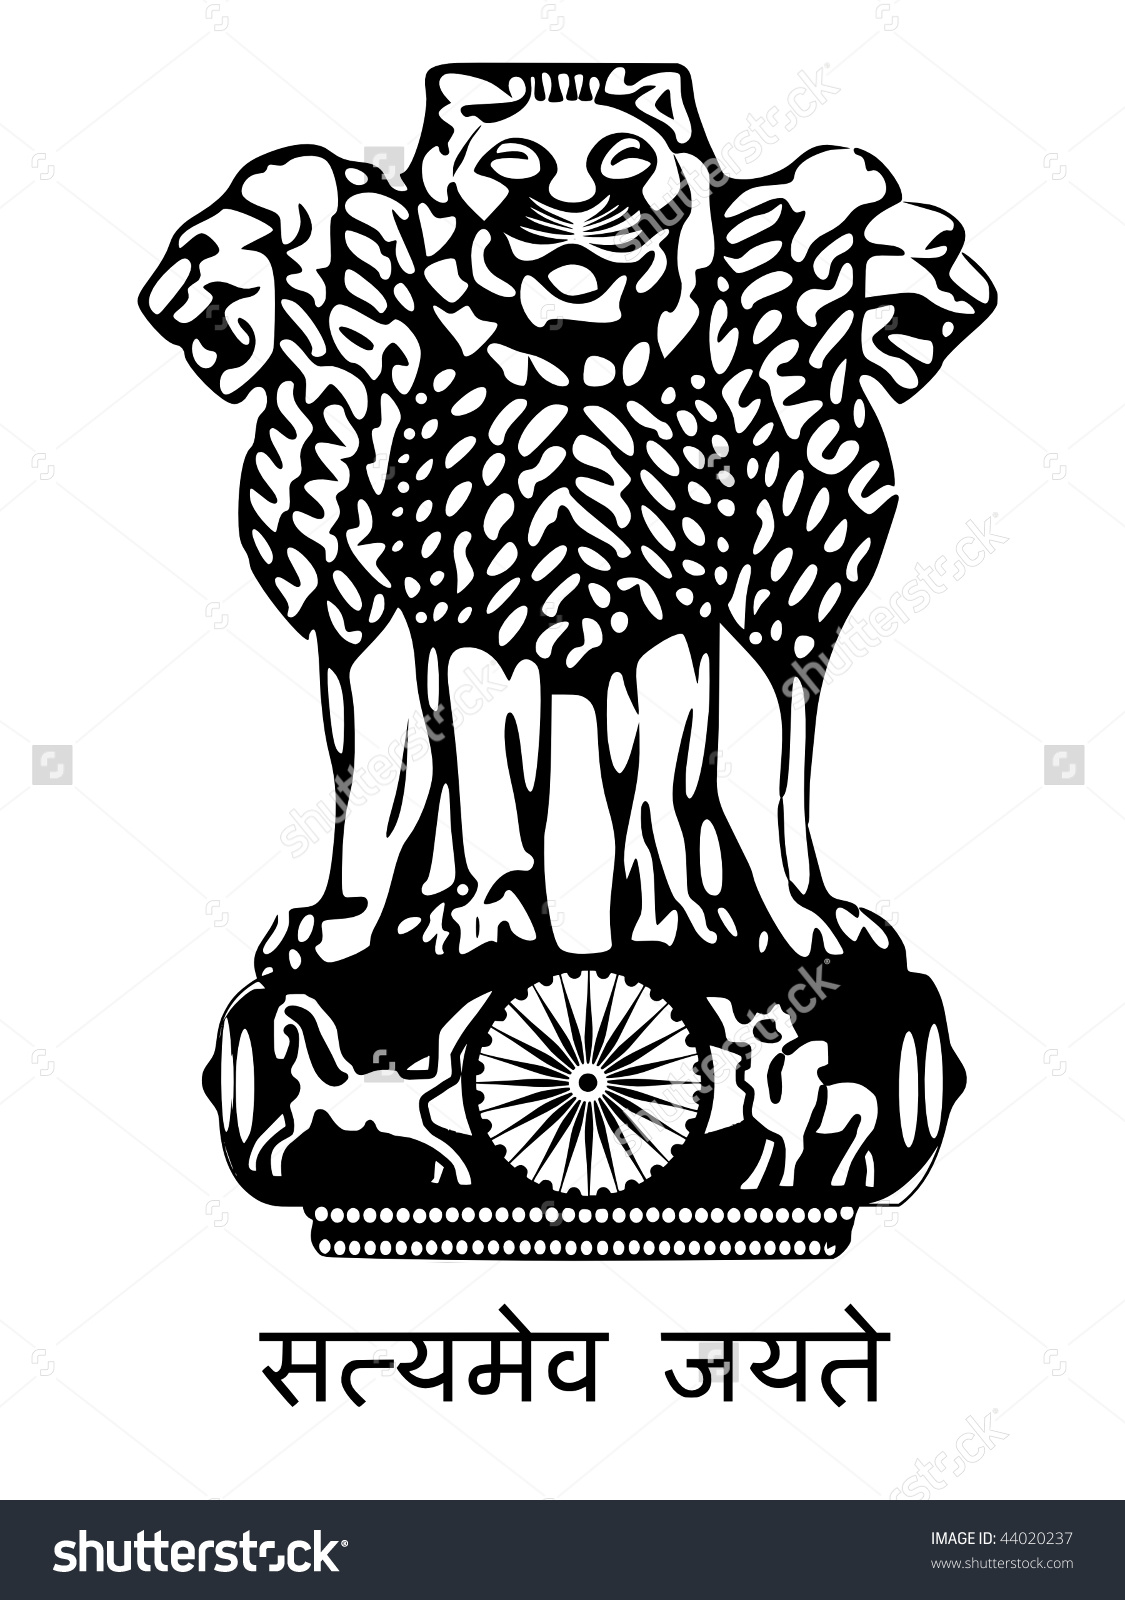 National emblem of india clipart.